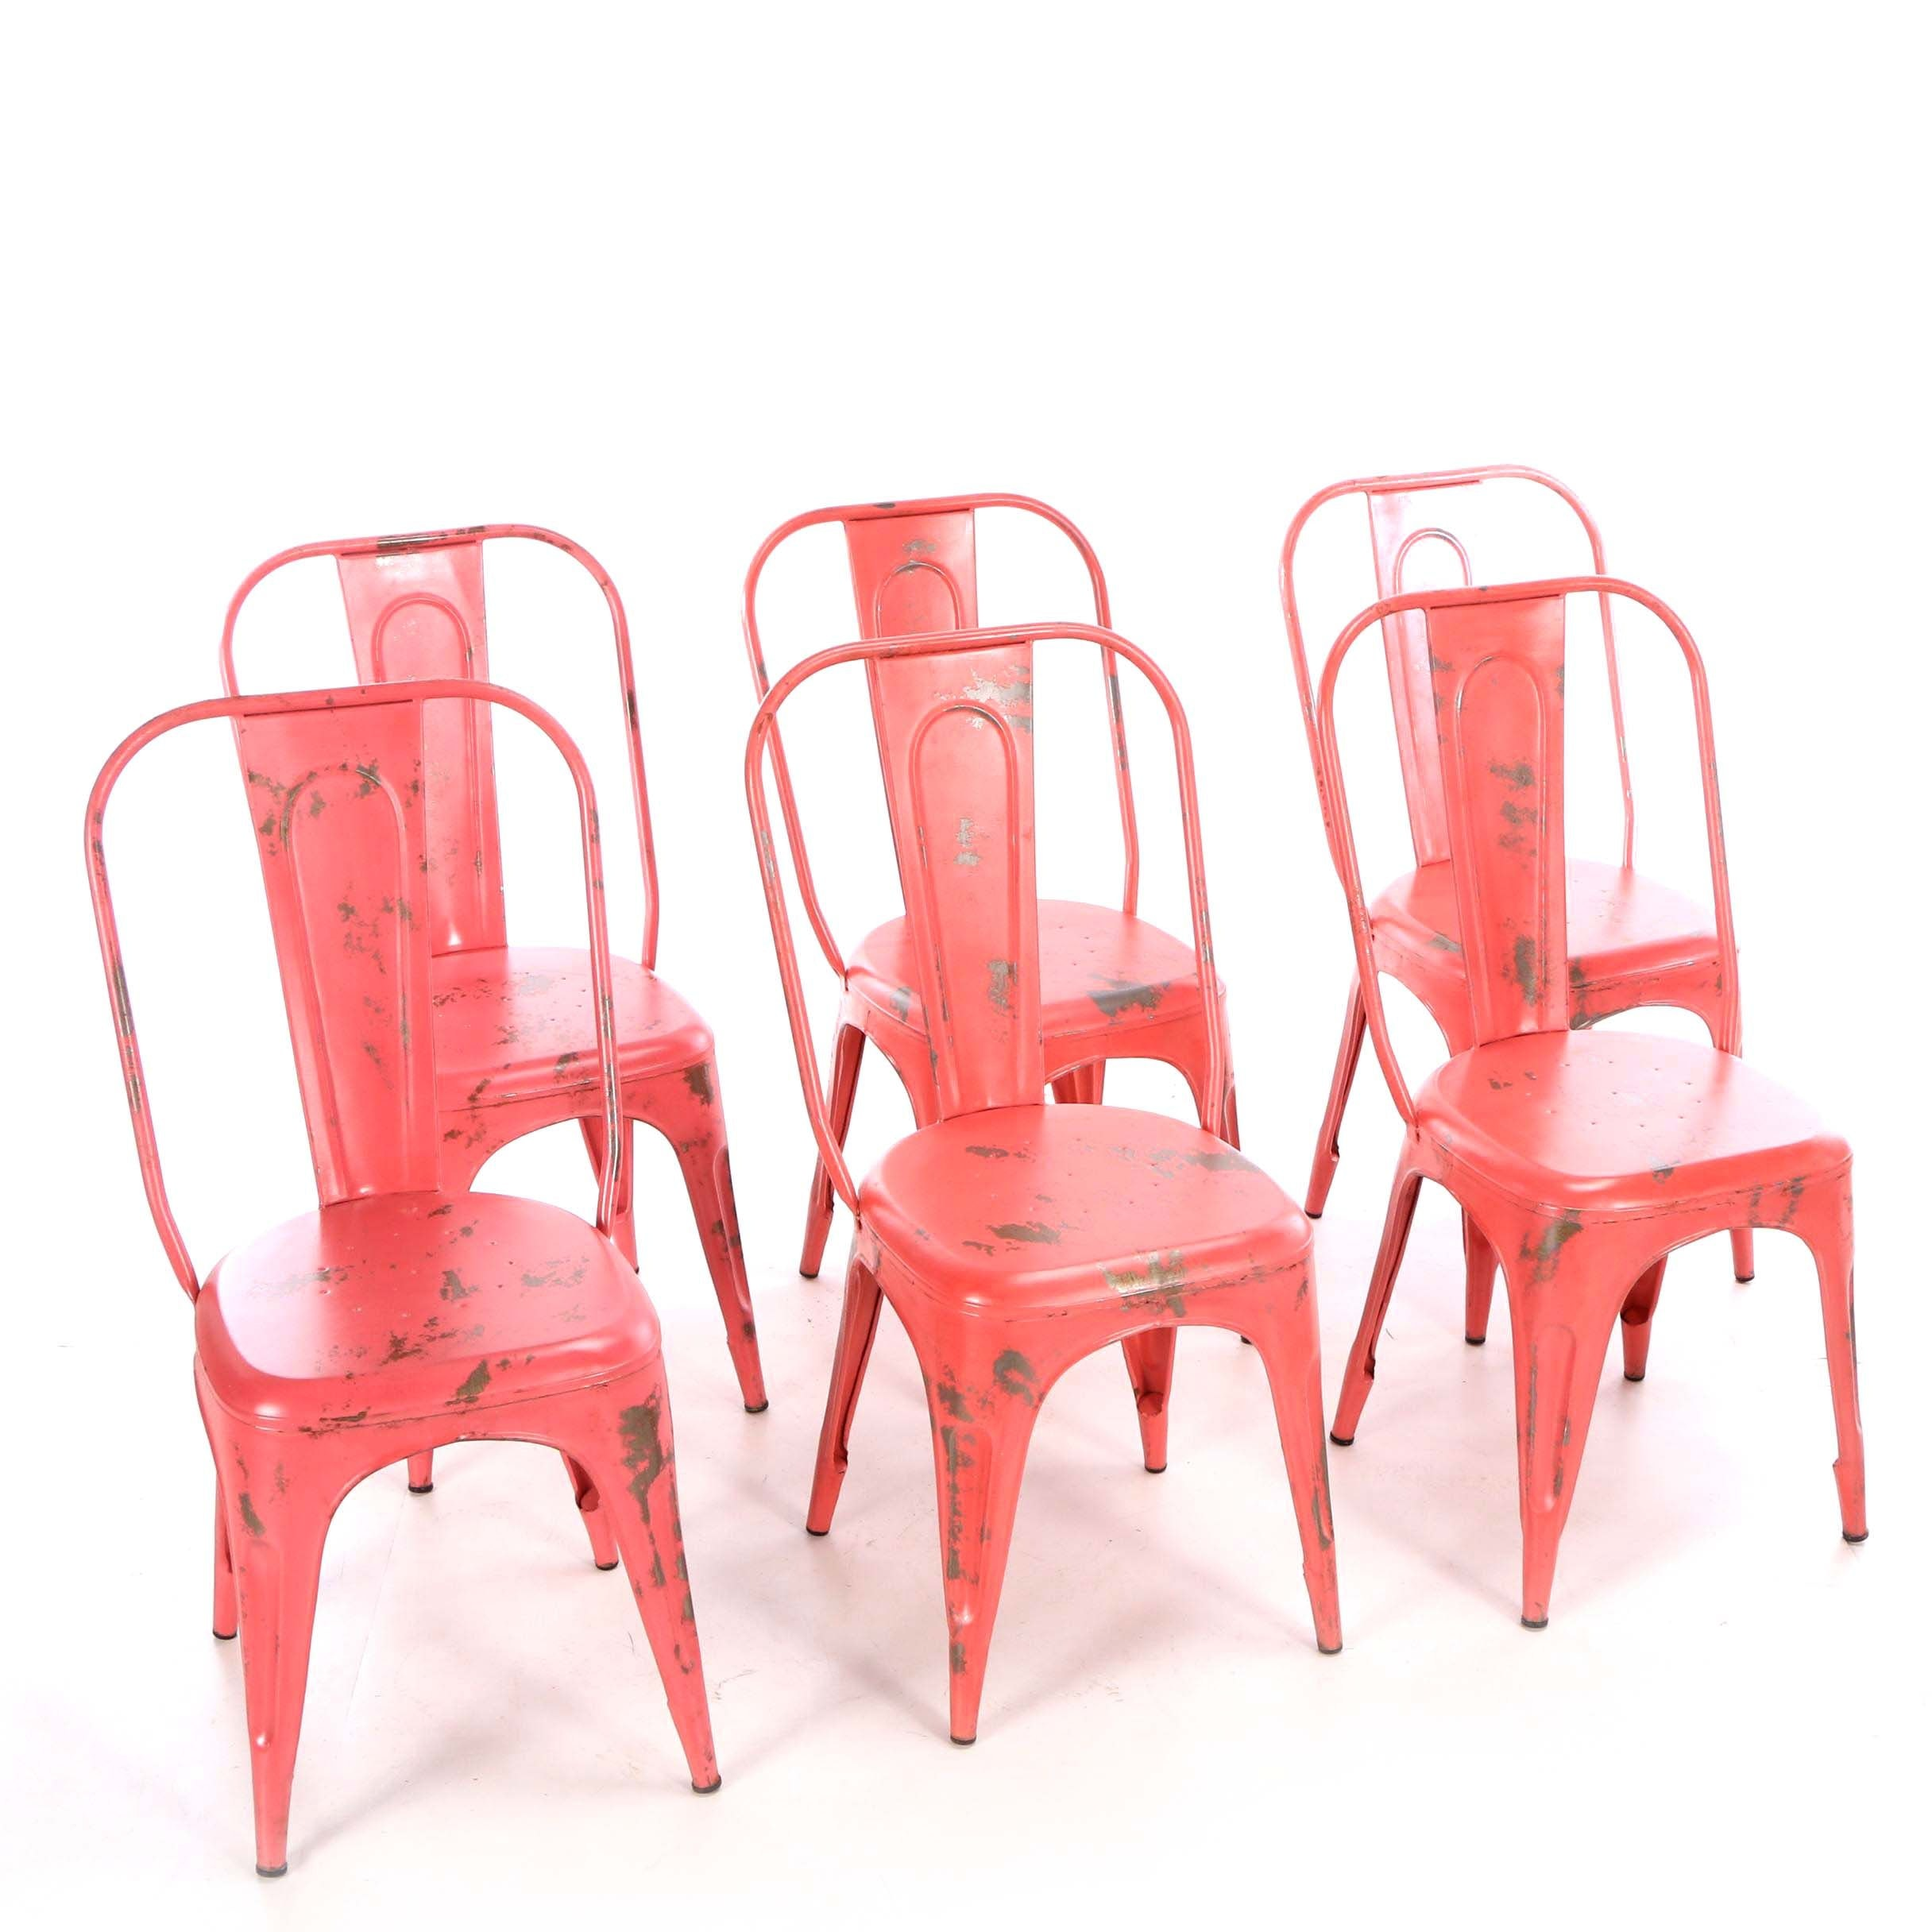 Industrial Style Painted Metal Side Chairs, Mid-20th Century